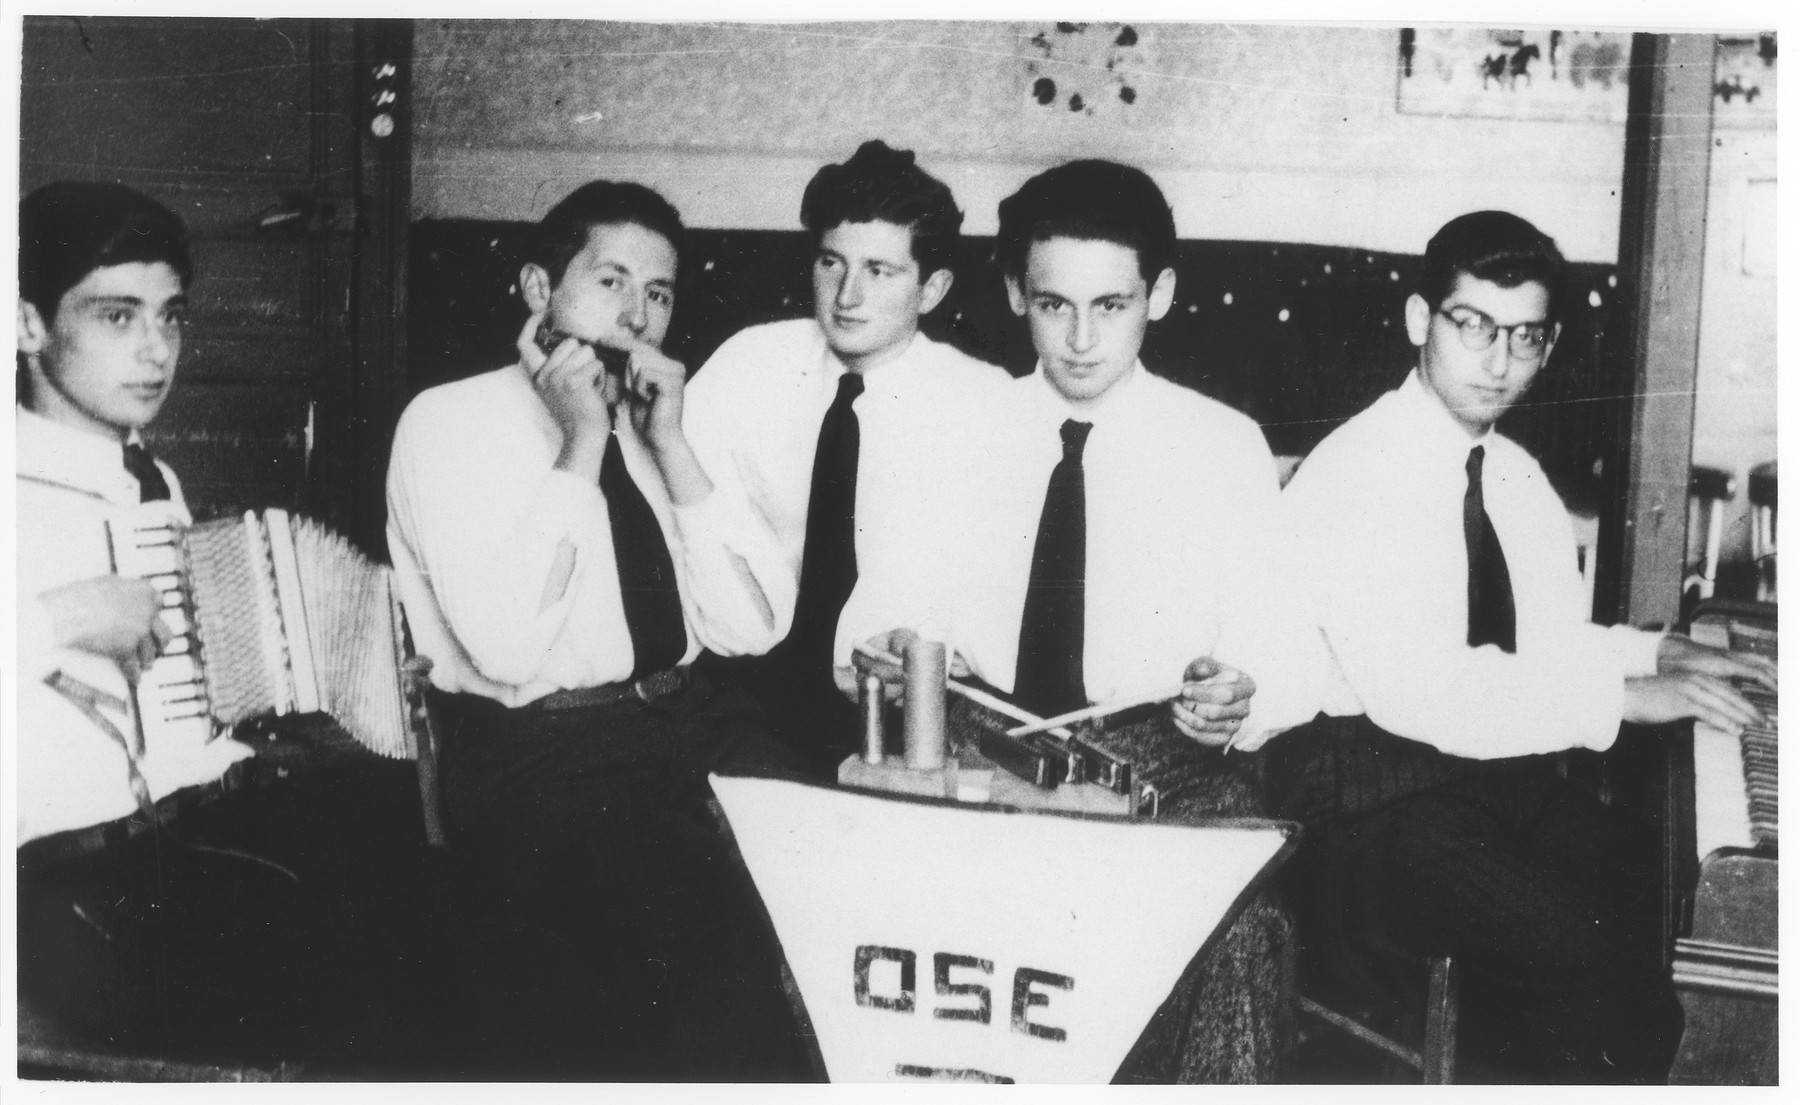 """Jewish refugee youth perform in a band at the Montintin children's home.  The orchestra called itself """"Orchestre Sans Espoir"""" [the orchestra without hope], a play on words for the initials OSE.  Pictured from left to right are Horst Rotholz, Werner Hausman, Guenther Heilbrun, Micki Stiasski and Hans Windmuller."""